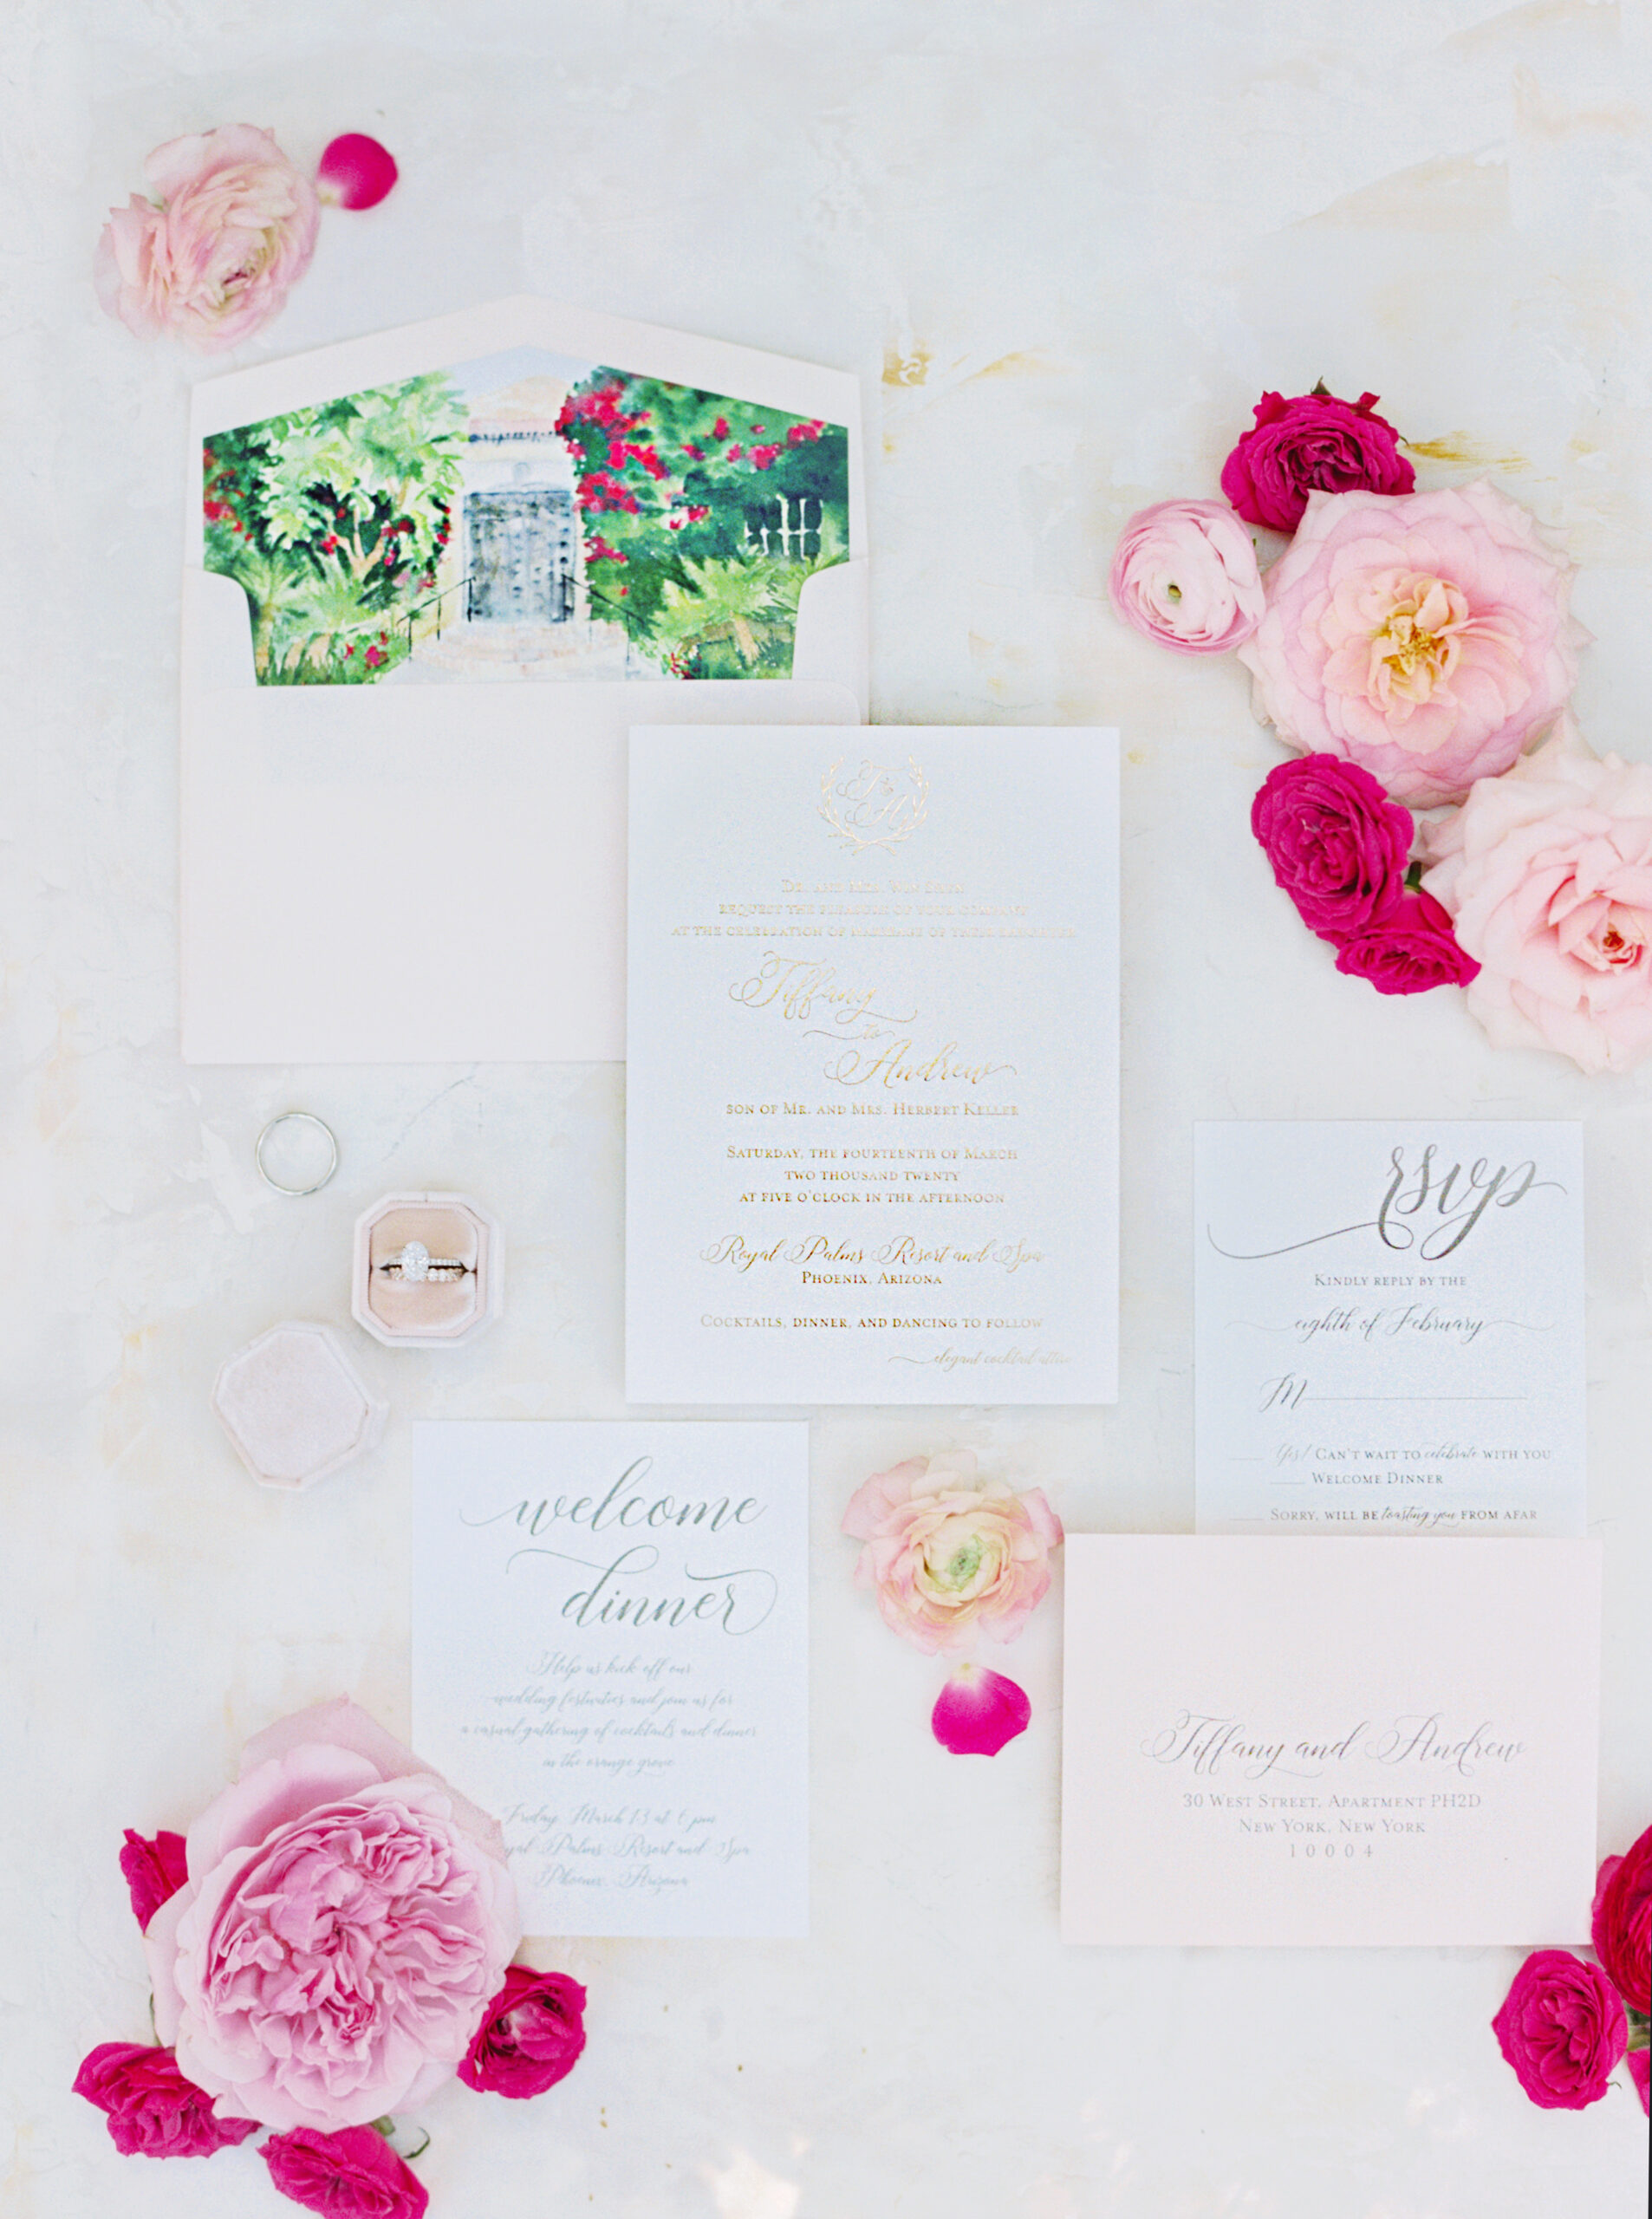 Gold foil invitation with custom watercolor artwork of Royal Palms